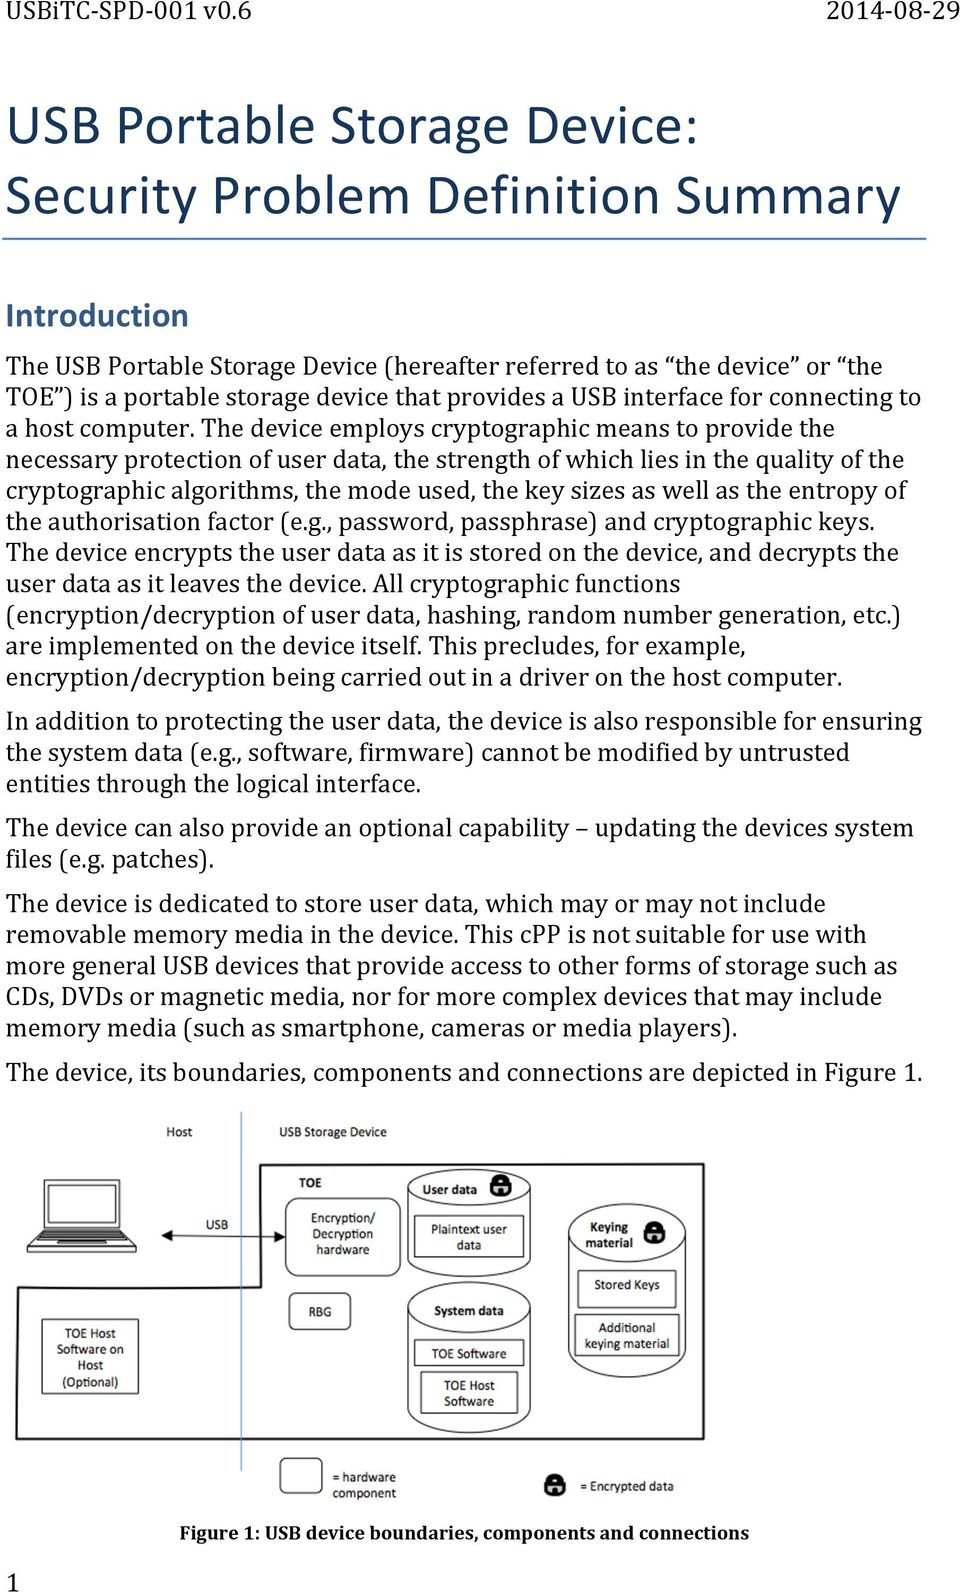 The device employs cryptographic means to provide the necessary protection of user data, the strength of which lies in the quality of the cryptographic algorithms, the mode used, the key sizes as